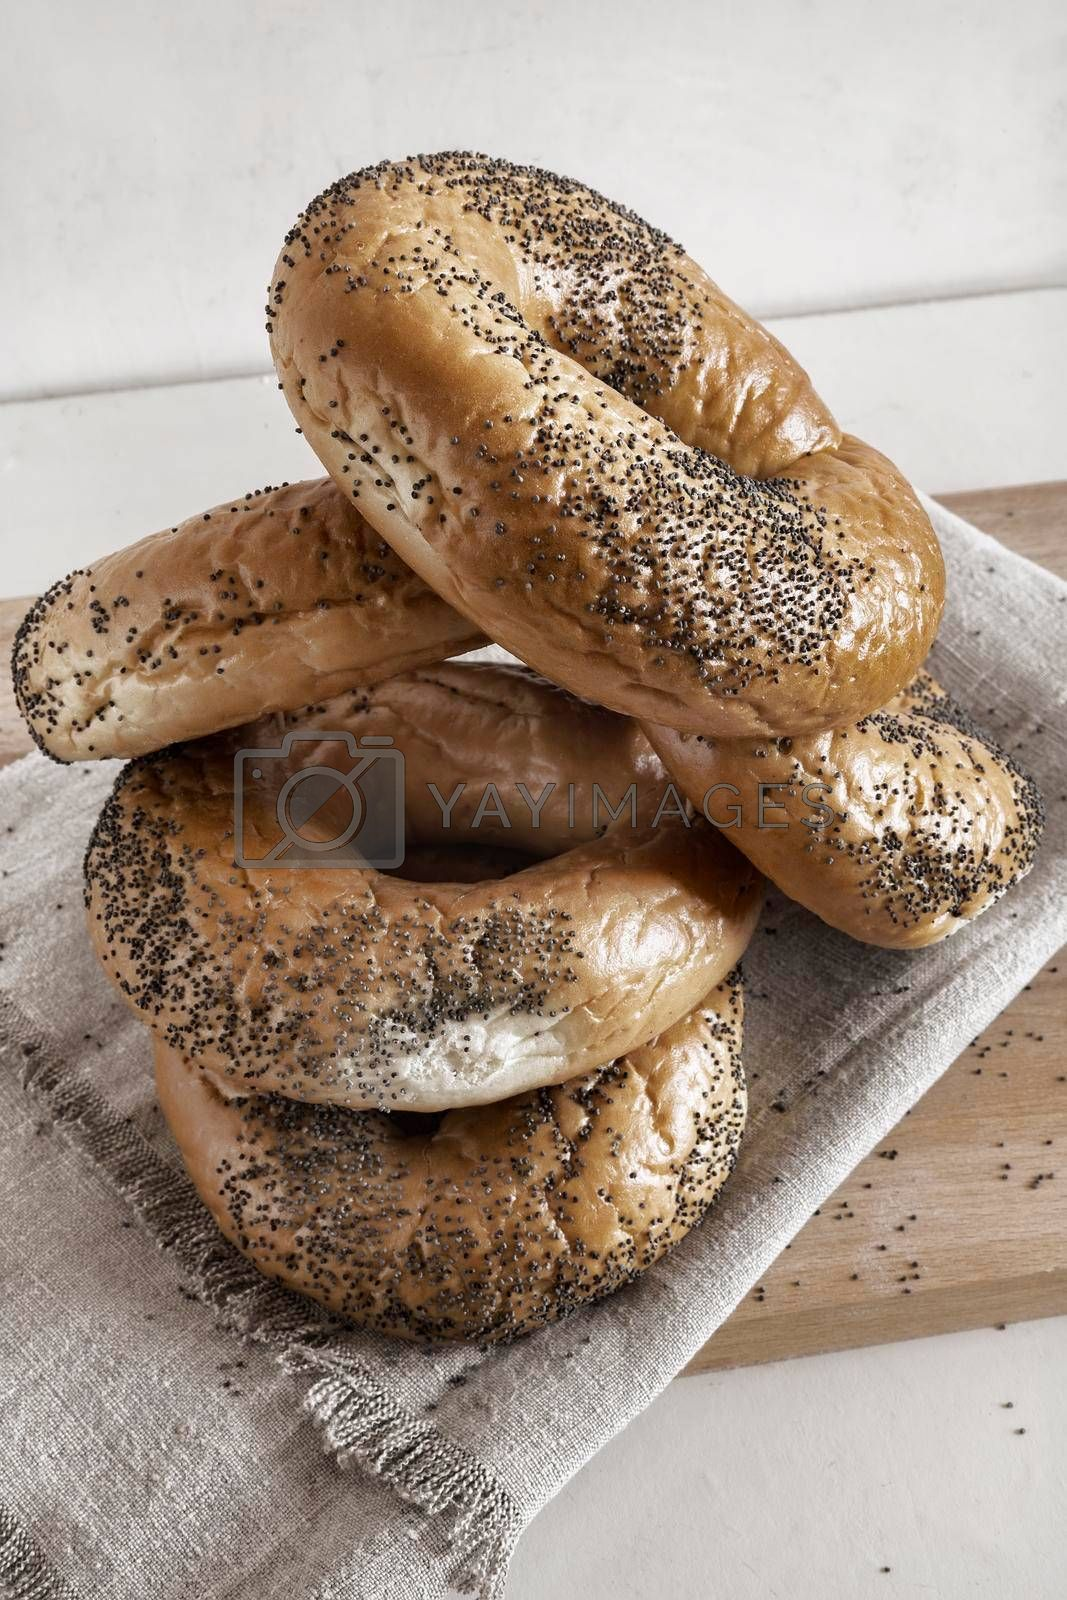 Royalty free image of Bagels with poppy seeds on a napkin by georgina198